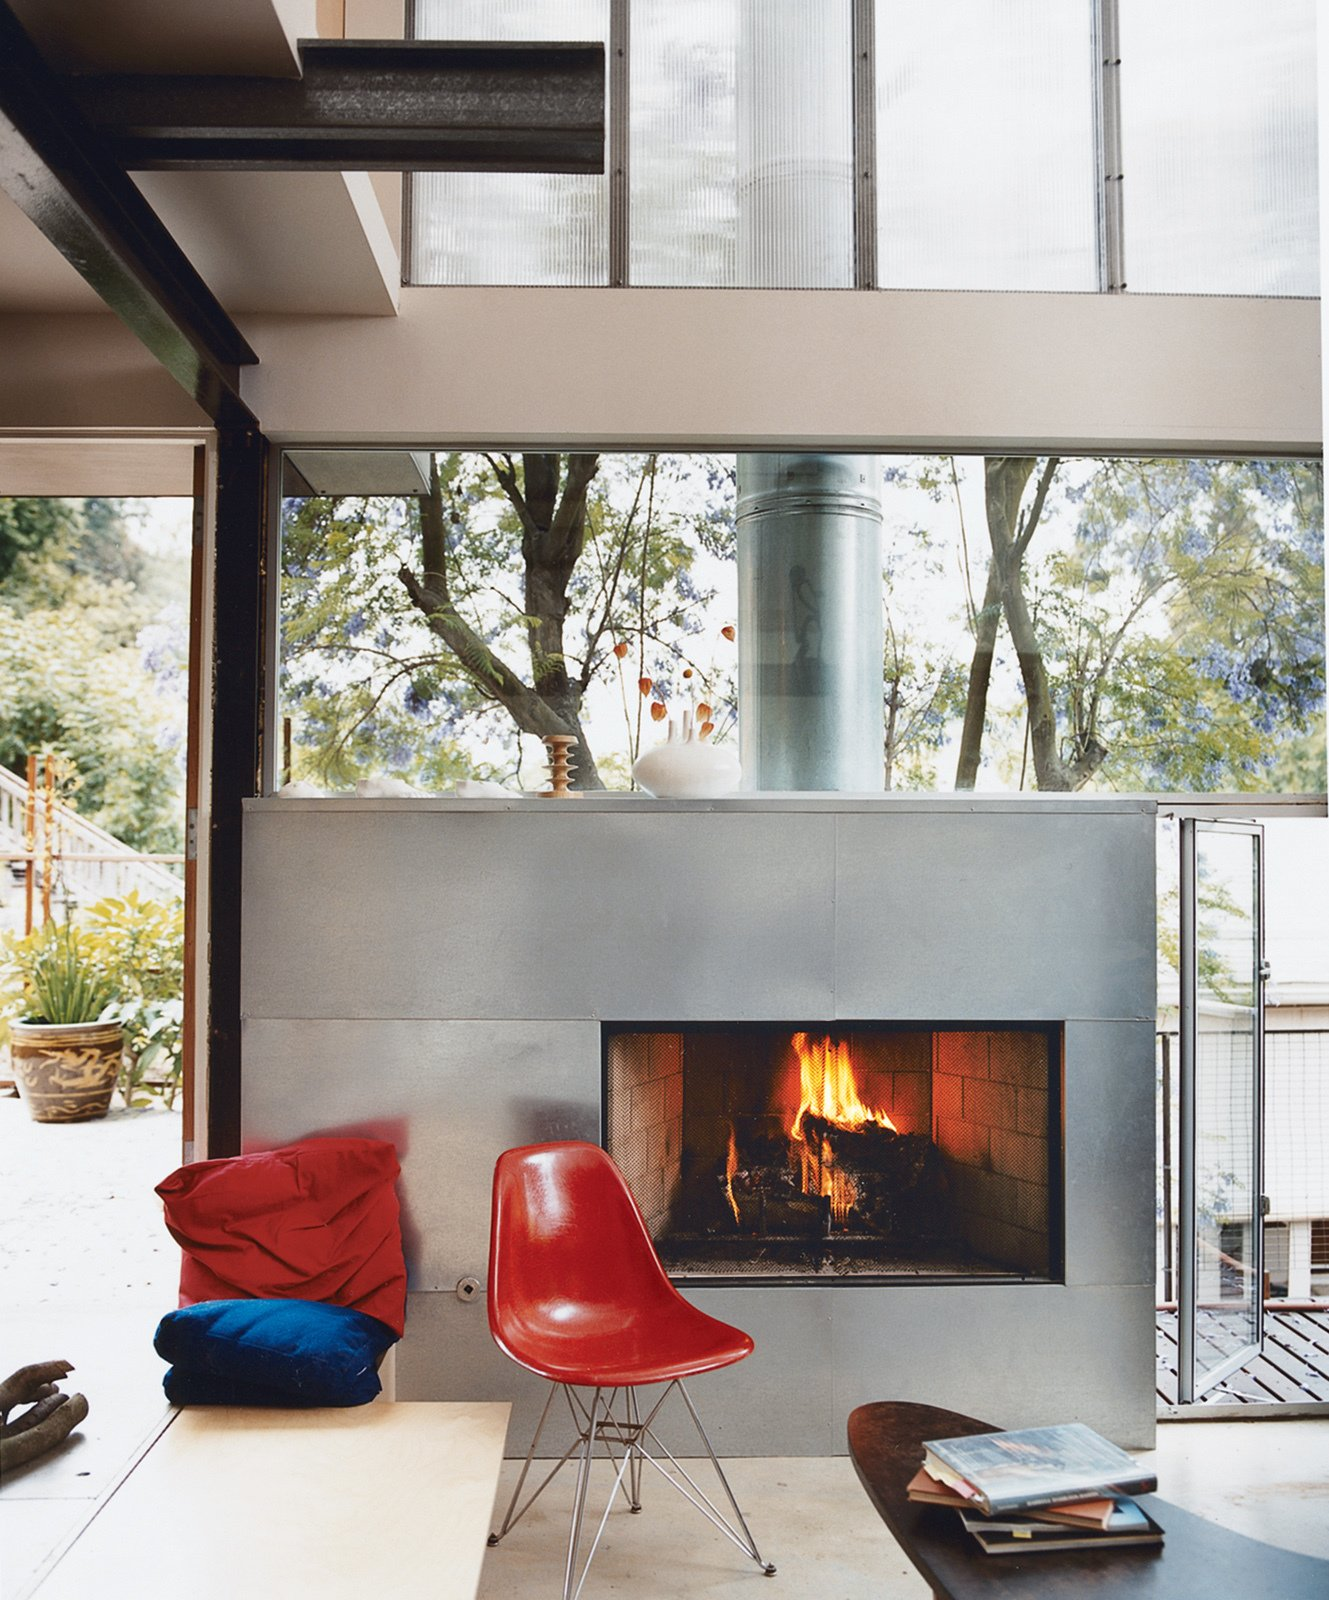 Living Room, Corner Fireplace, Wood Burning Fireplace, Coffee Tables, Chair, and Bench  97+ Modern Fireplace Ideas from Eames Molded Chairs